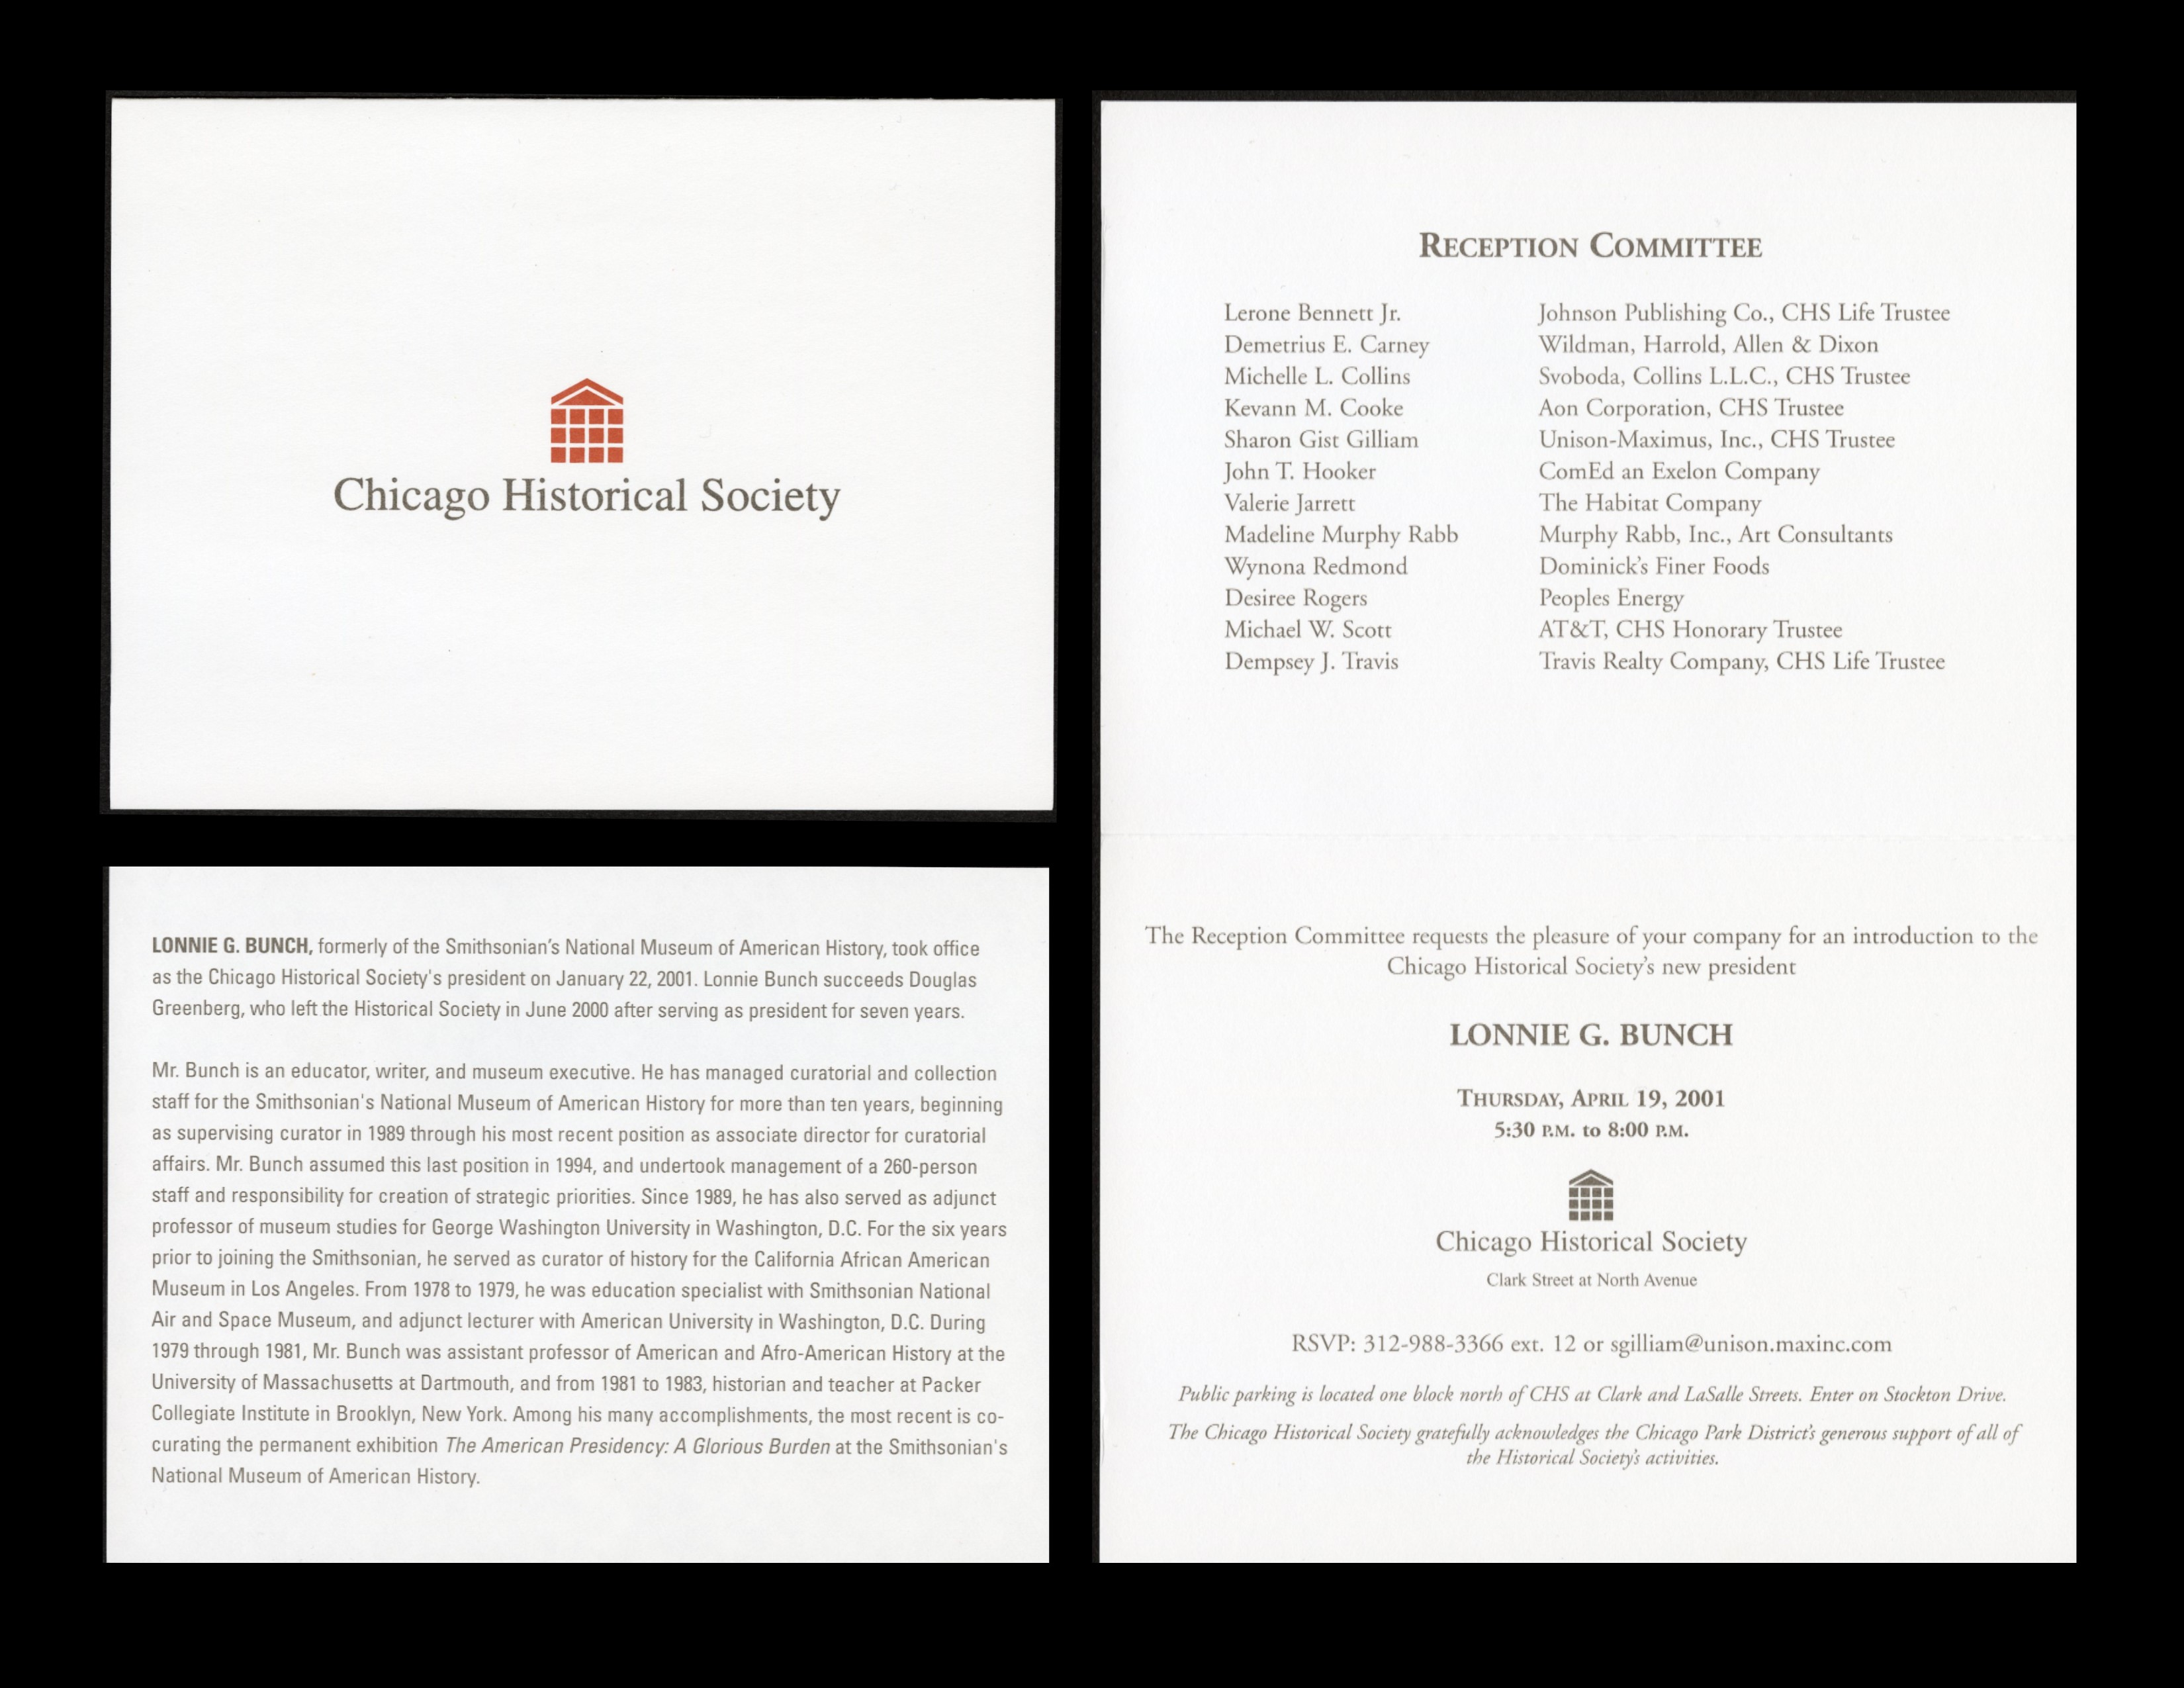 Invitation to reception to welcome Lonnie G. Bunch as the new president of the Chicago Historical So